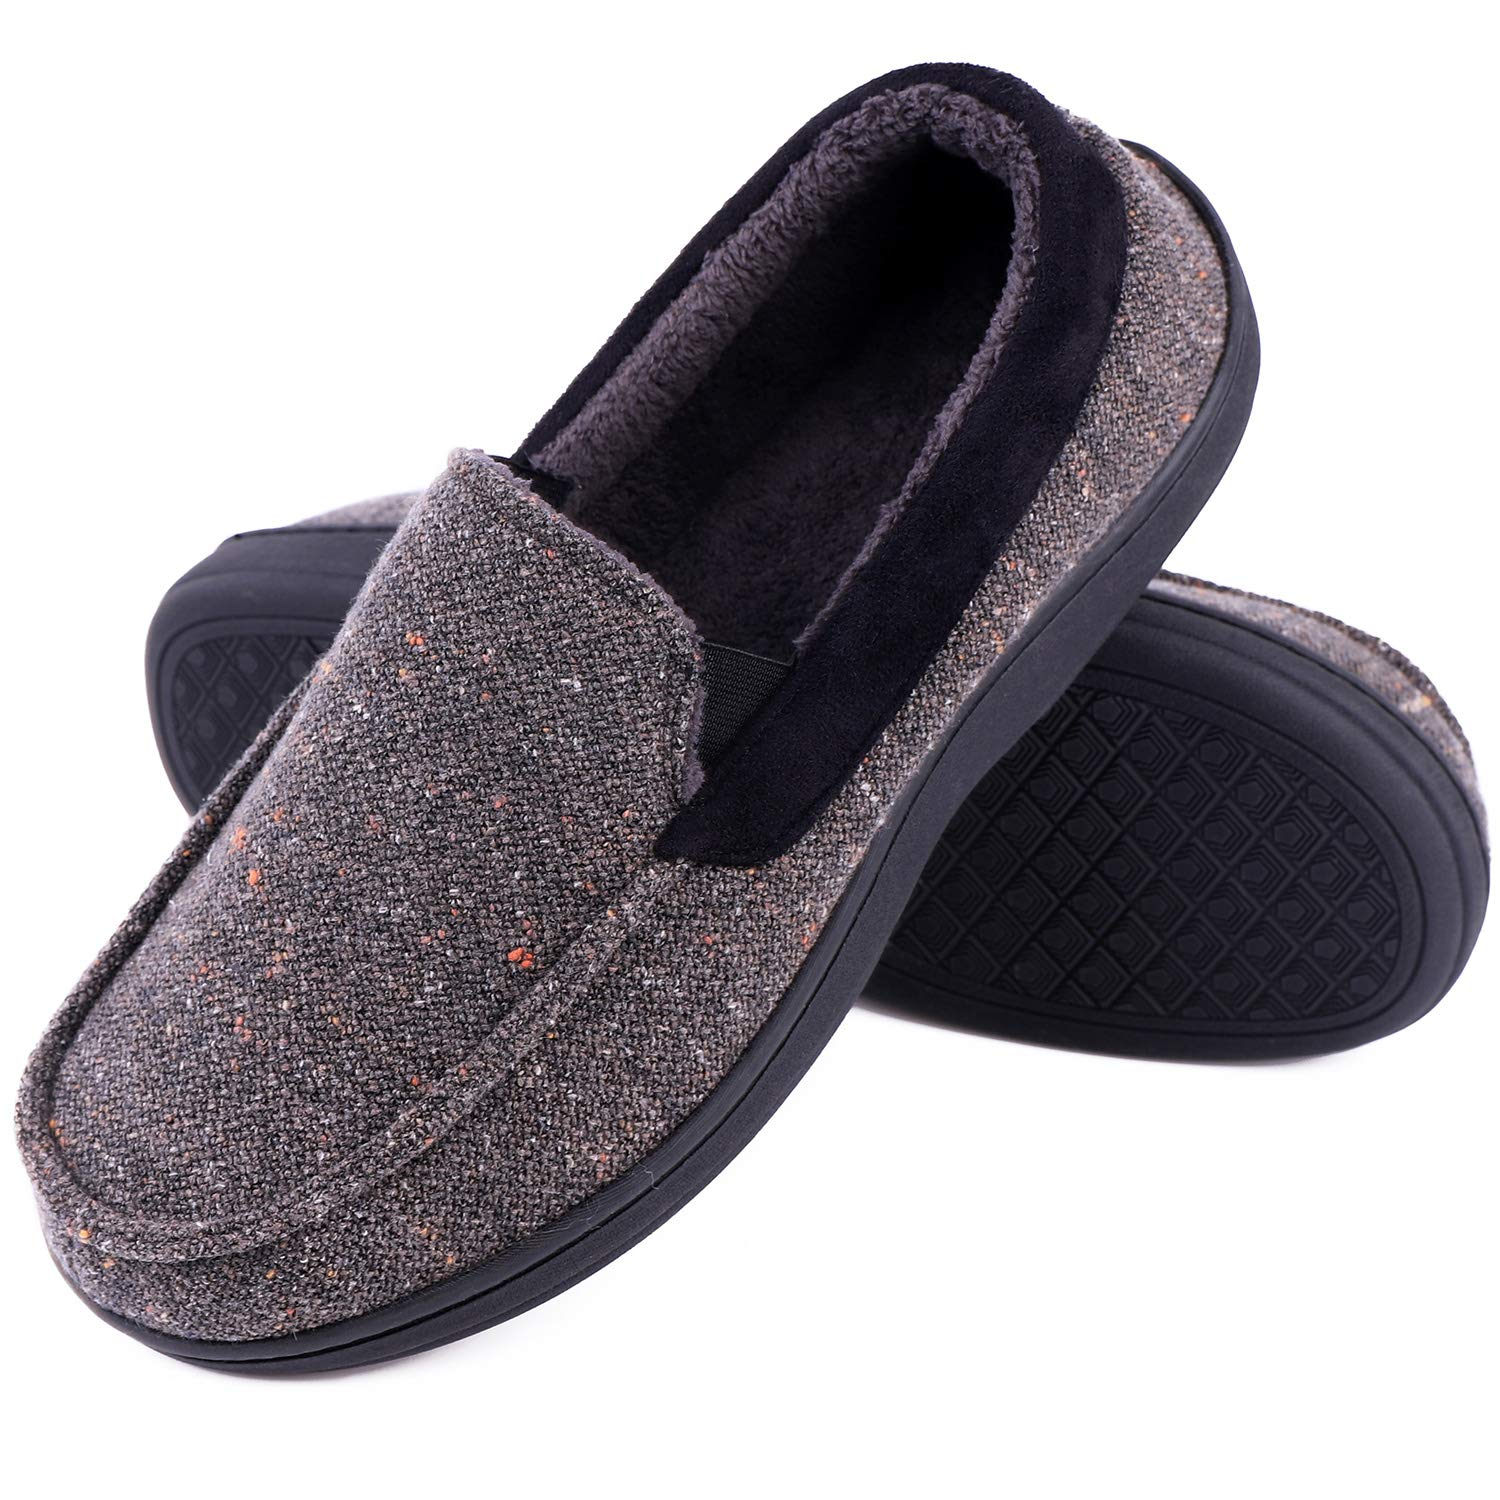 LongBay Men's Memory Foam Moccasin Slippers Plush Fleece House Shoes in Indoor/Outdoor Loafer Style (12 D(M) US, Gray)